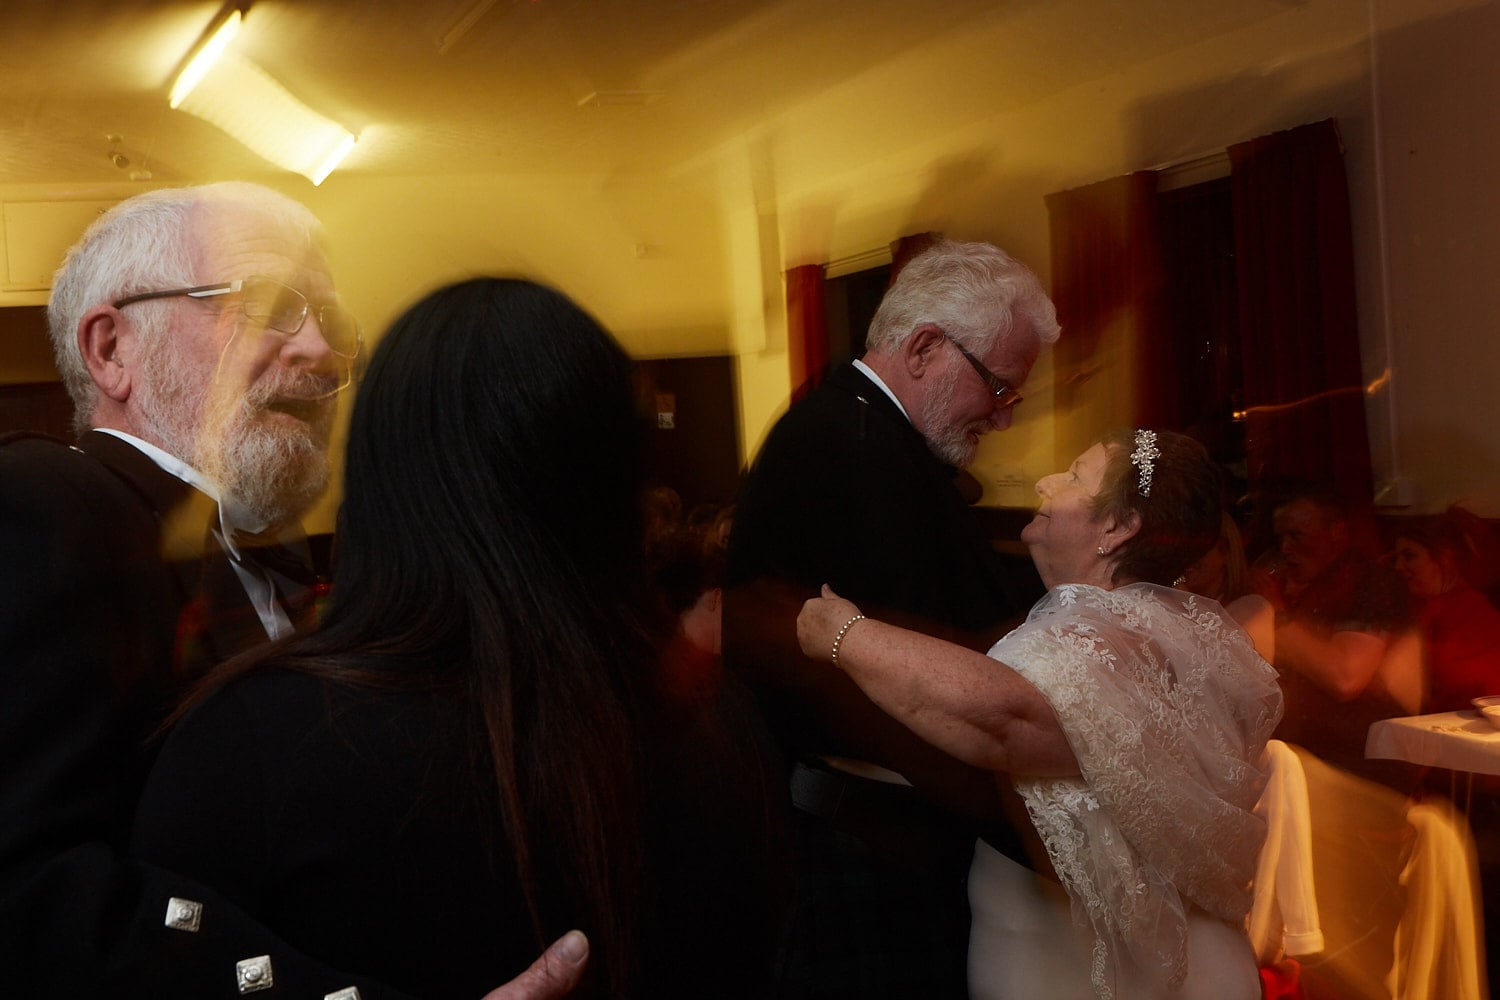 A bride & groom along with the best man and his granddaughter dance at a wedding reception